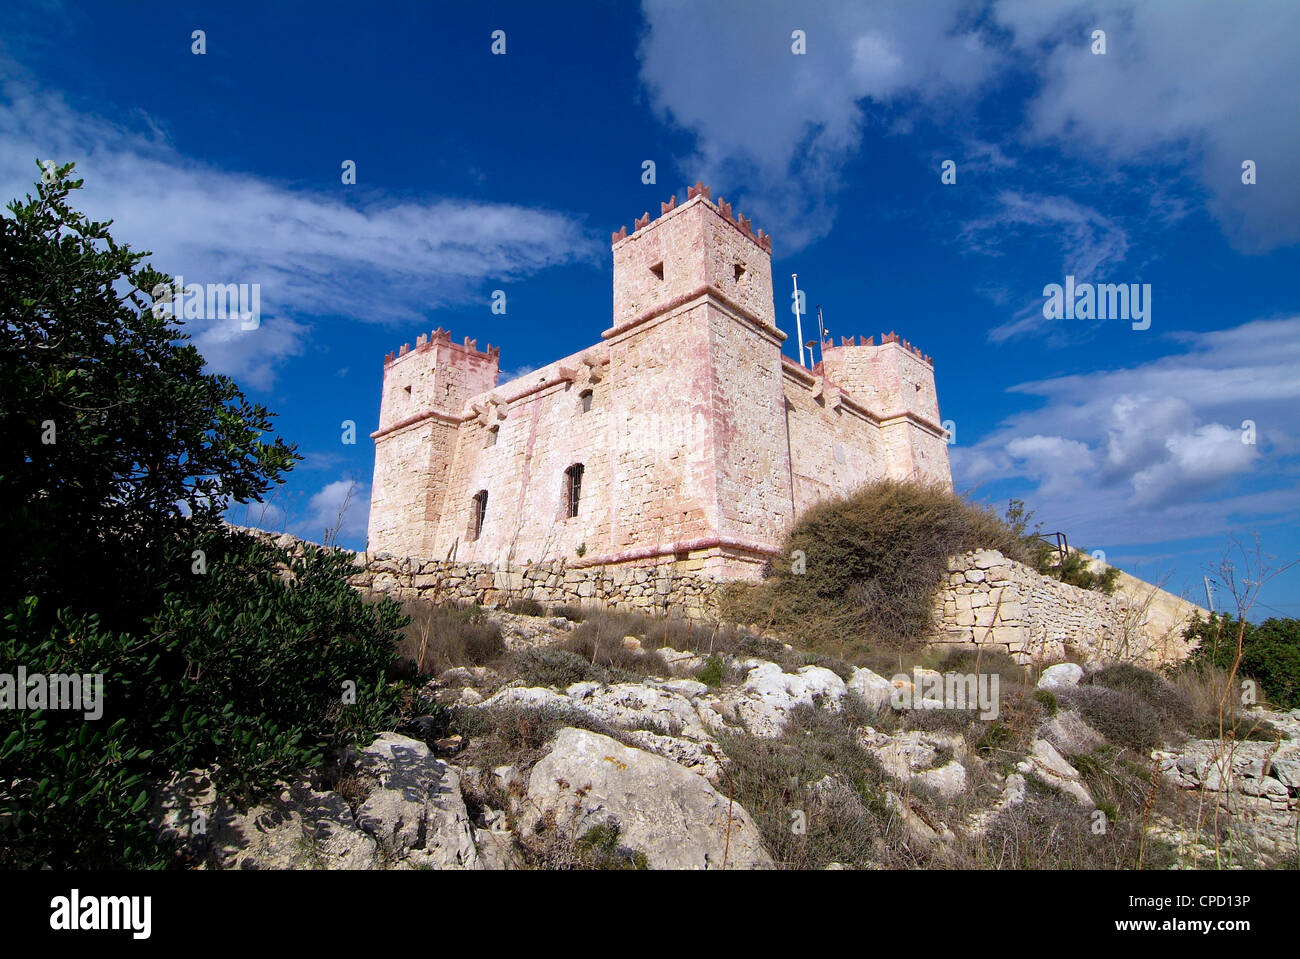 Red Tower, Marfa Ridge, Malta, Mediterranean, Europe - Stock Image